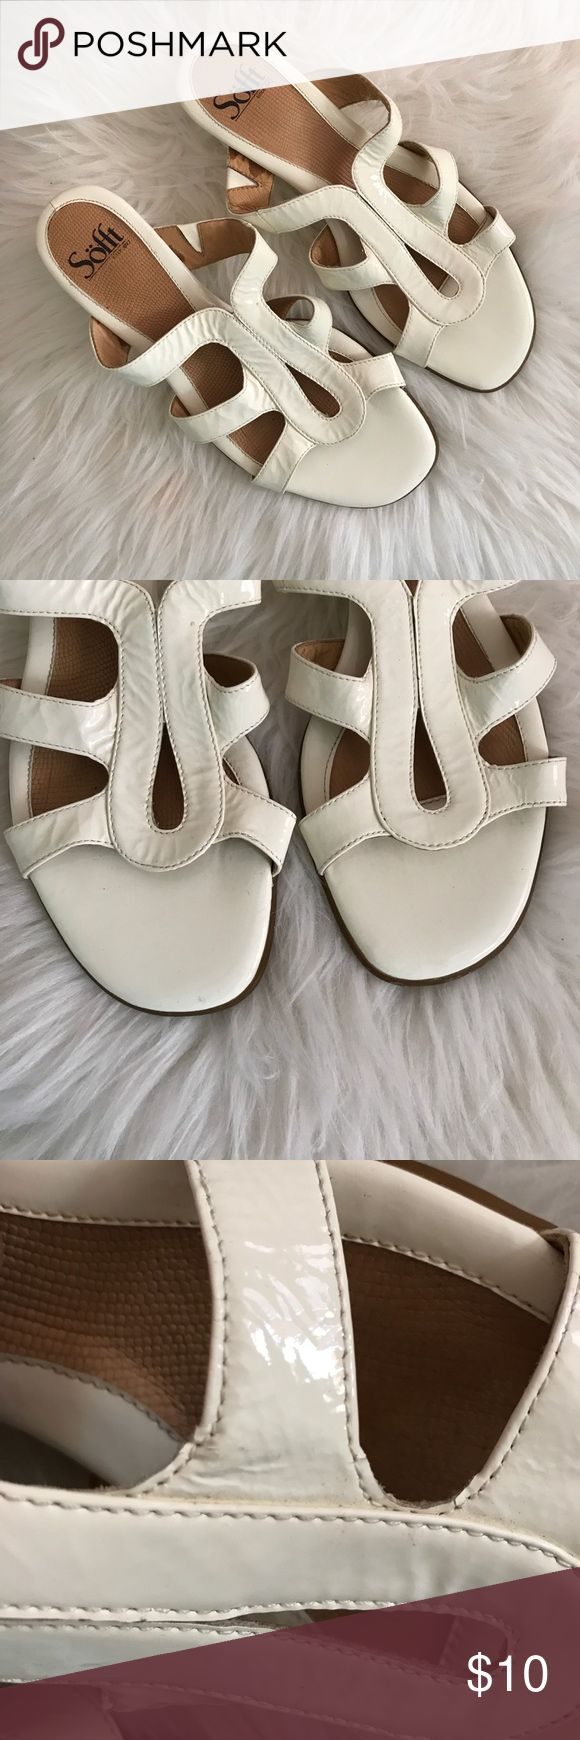 Sofft patent sandals Sofft patent sandals size 7.5 used and tiny flaw as seen in photo. Sofft Shoes Sandals